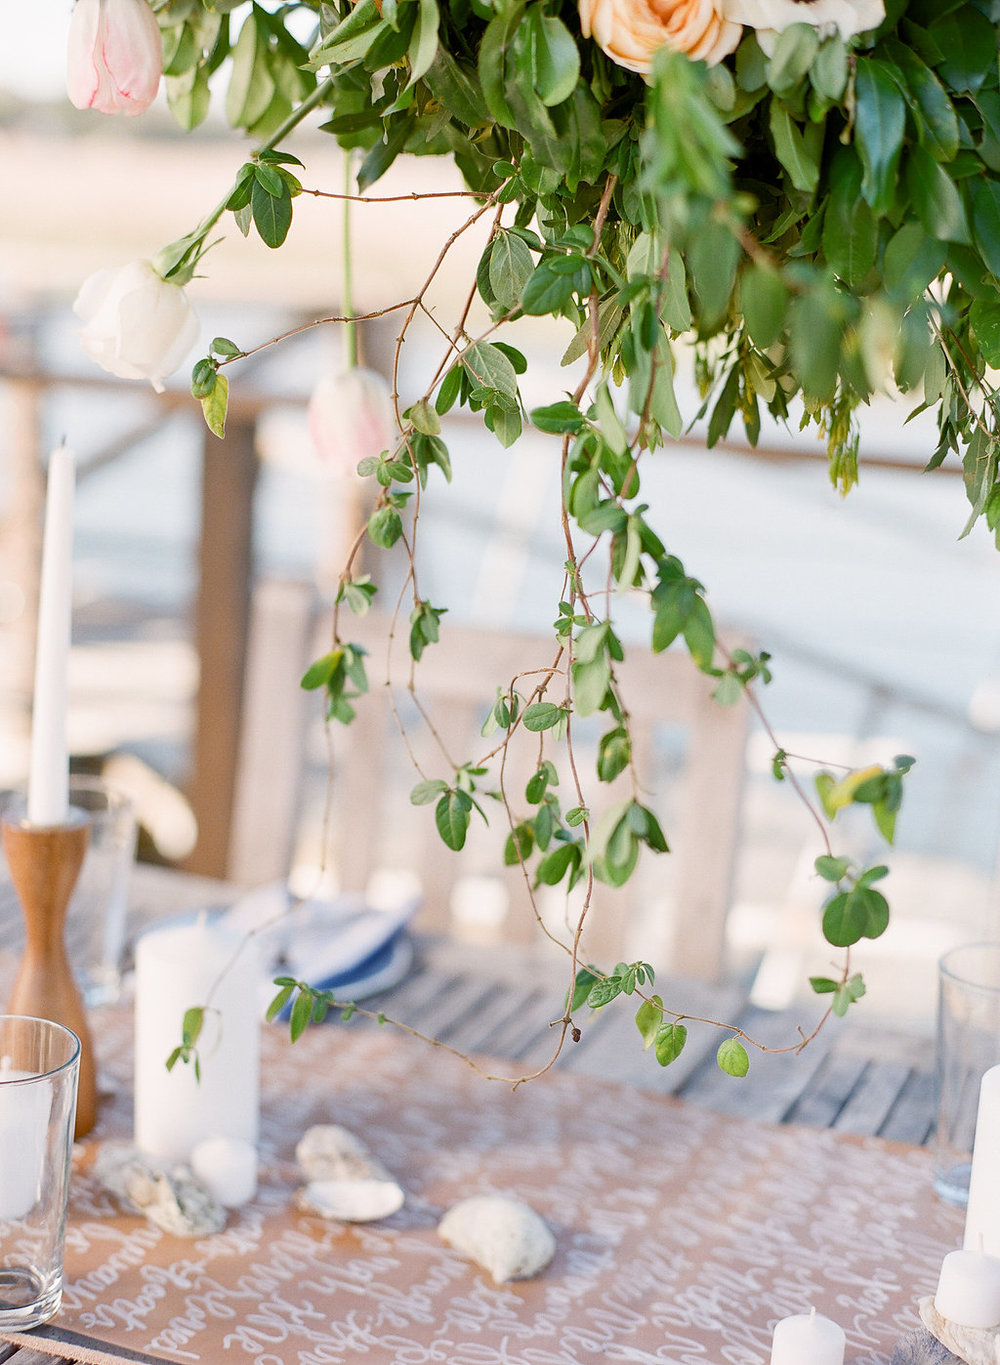 hanging-centerpiece-geometric-shape-wedding-inspiration-ivory-and-beau-savannah-wedding-florist-savannah-wedding-planner-savannah-event-designer-the-wyld-dock-bar-wedding-savannah-georgia-outdoor-rustic-wedding.jpg